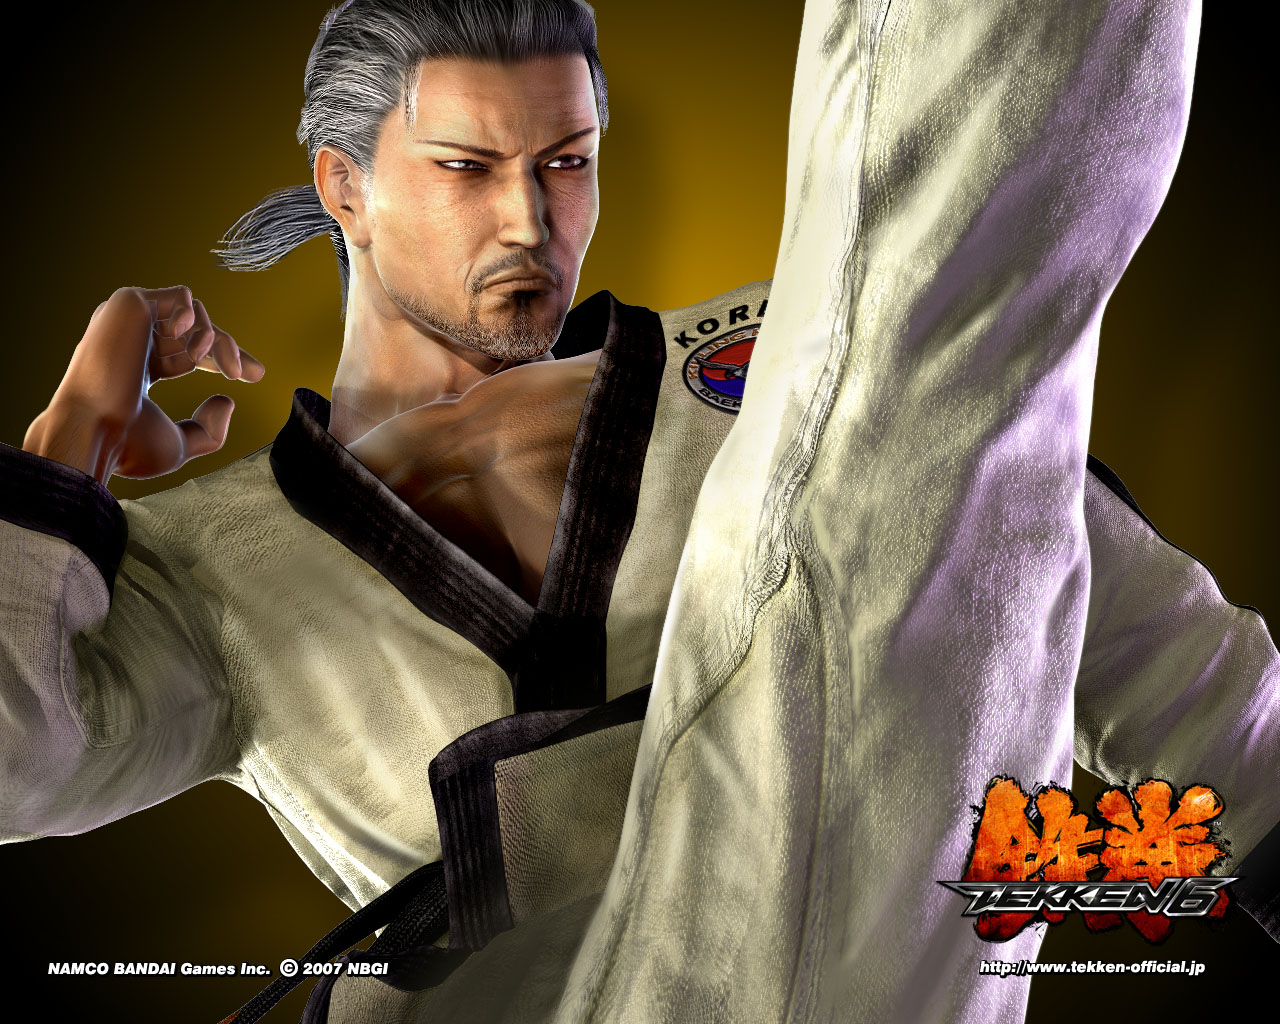 Tekken Tag Tournament 5 Game Wallpaper Games Console